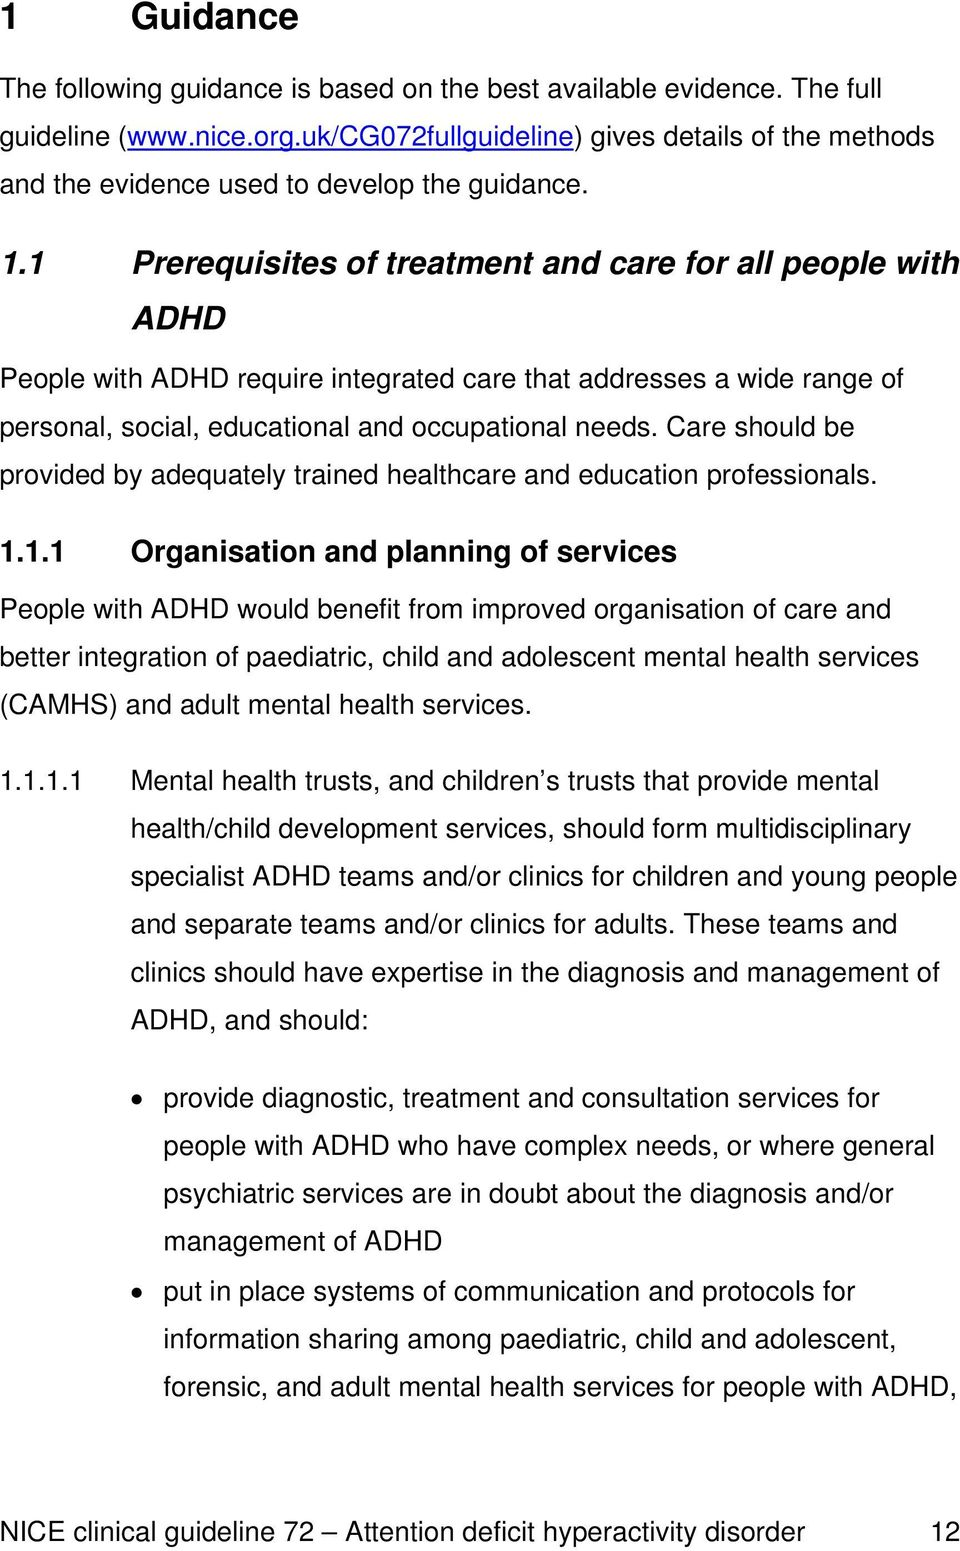 1 Prerequisites of treatment and care for all people with ADHD People with ADHD require integrated care that addresses a wide range of personal, social, educational and occupational needs.